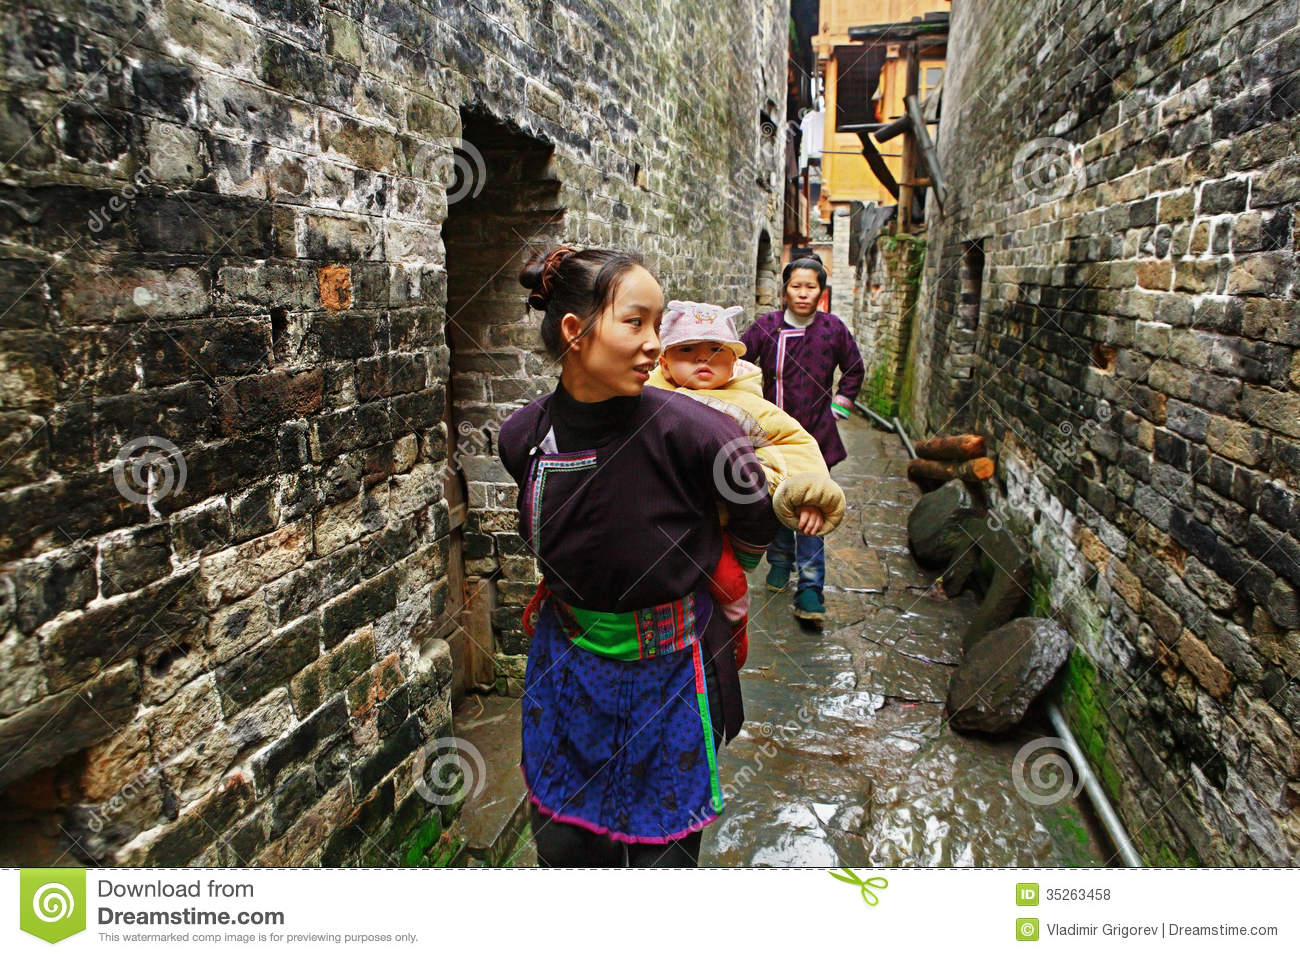 La femme asiatique porte le b b derri re le dos en chine rurale photo stock - Village de chine le mans ...